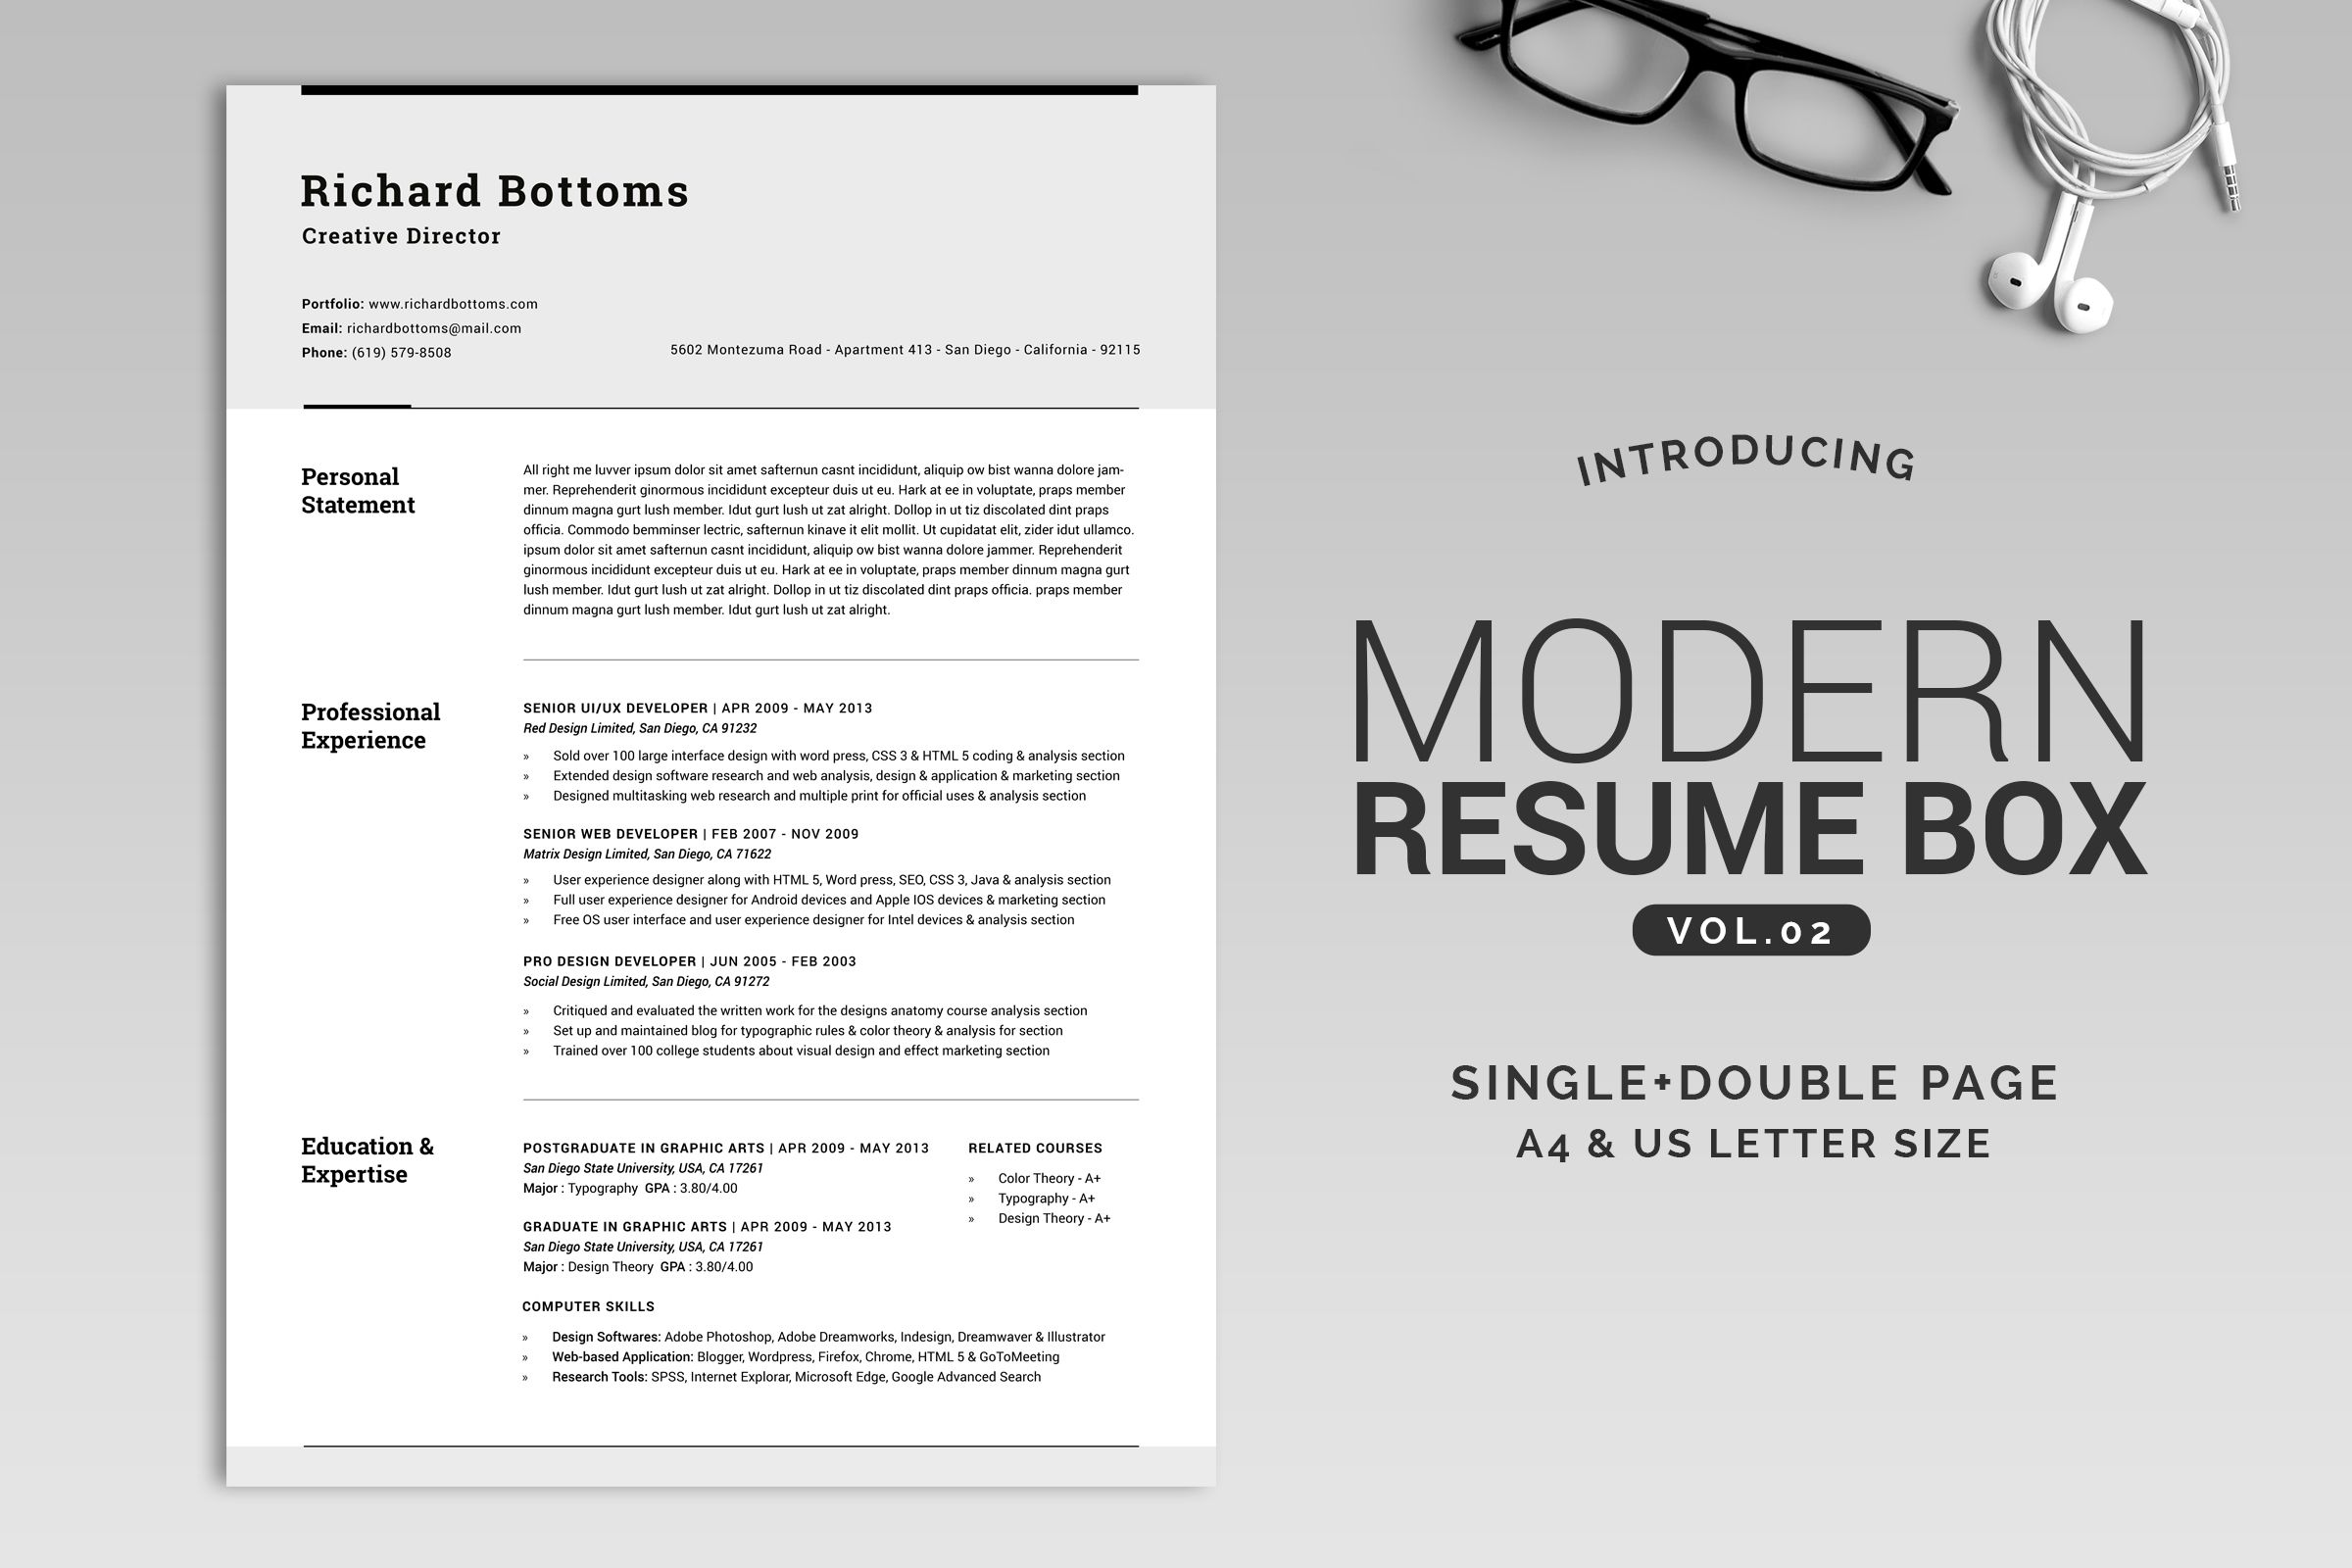 All in One Modern Resume Box V.2 by SNIPESCIENTIST on ...